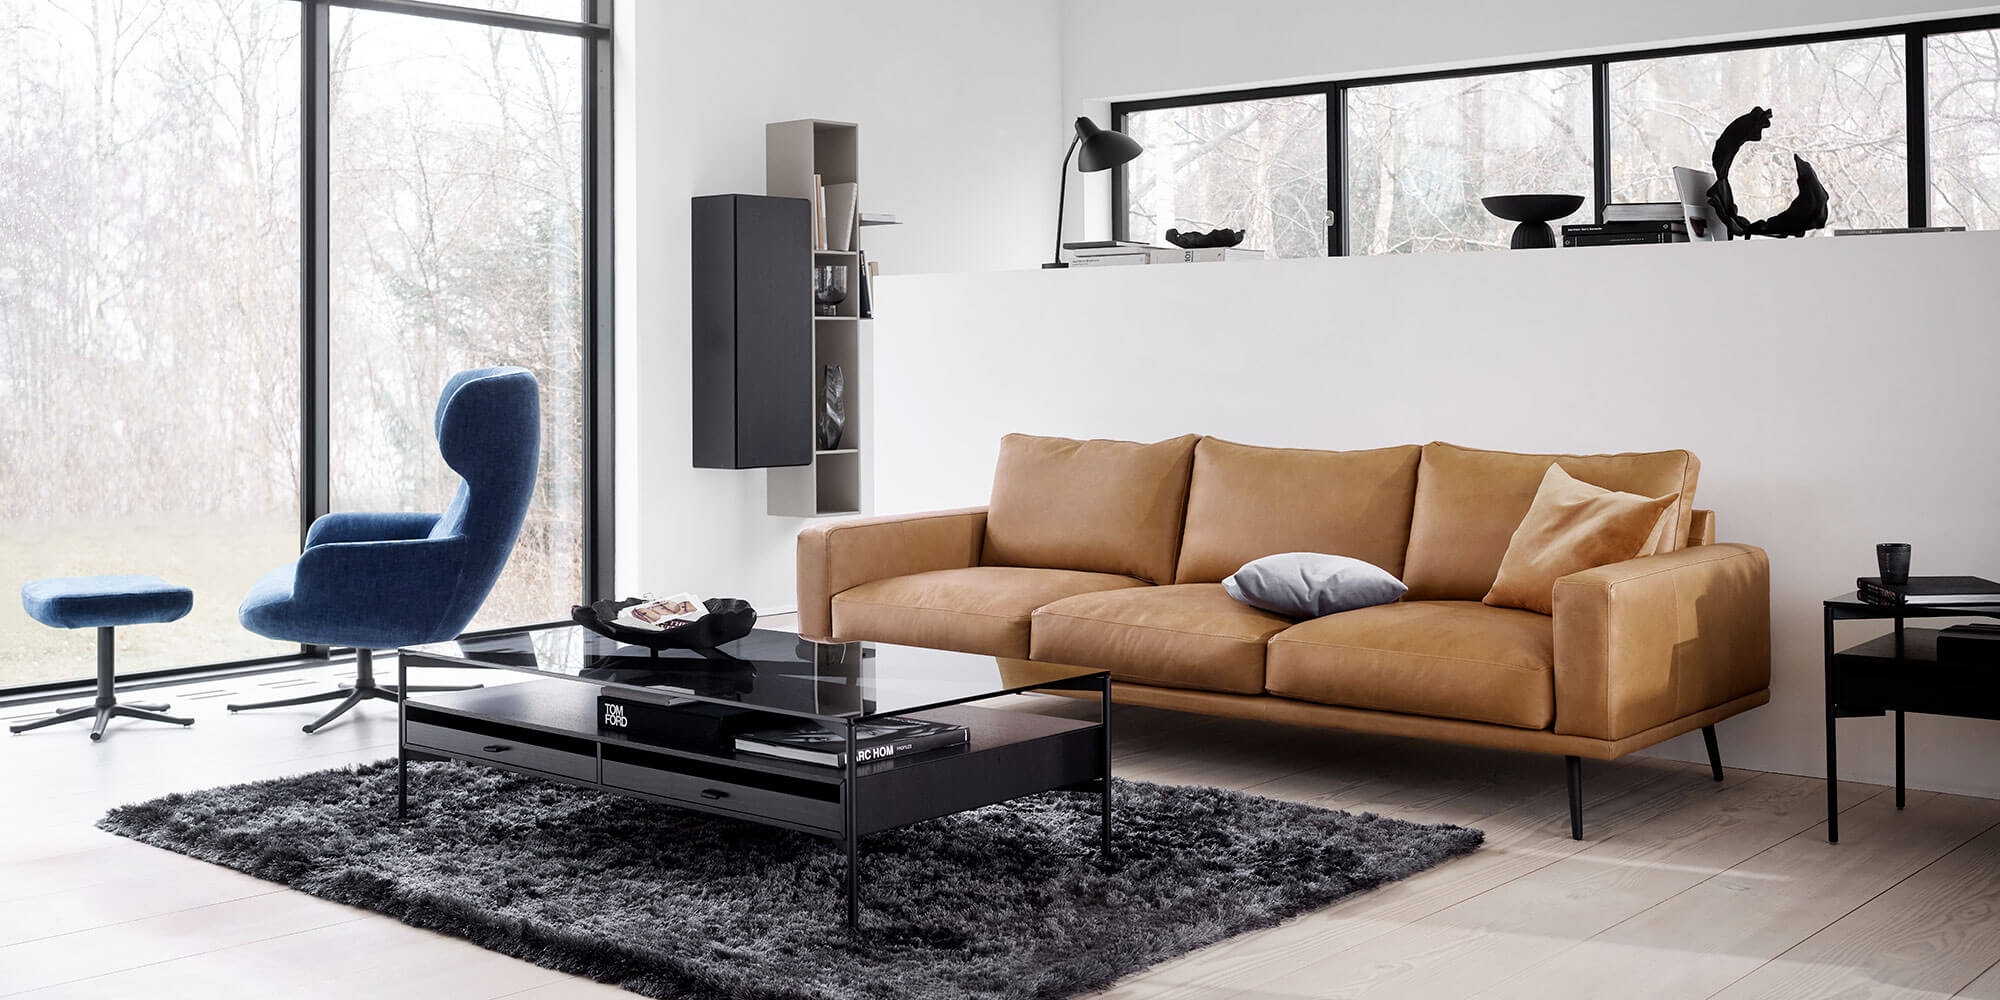 Pleasing Relaxed Living Trend Design By Boconcept Alphanode Cool Chair Designs And Ideas Alphanodeonline